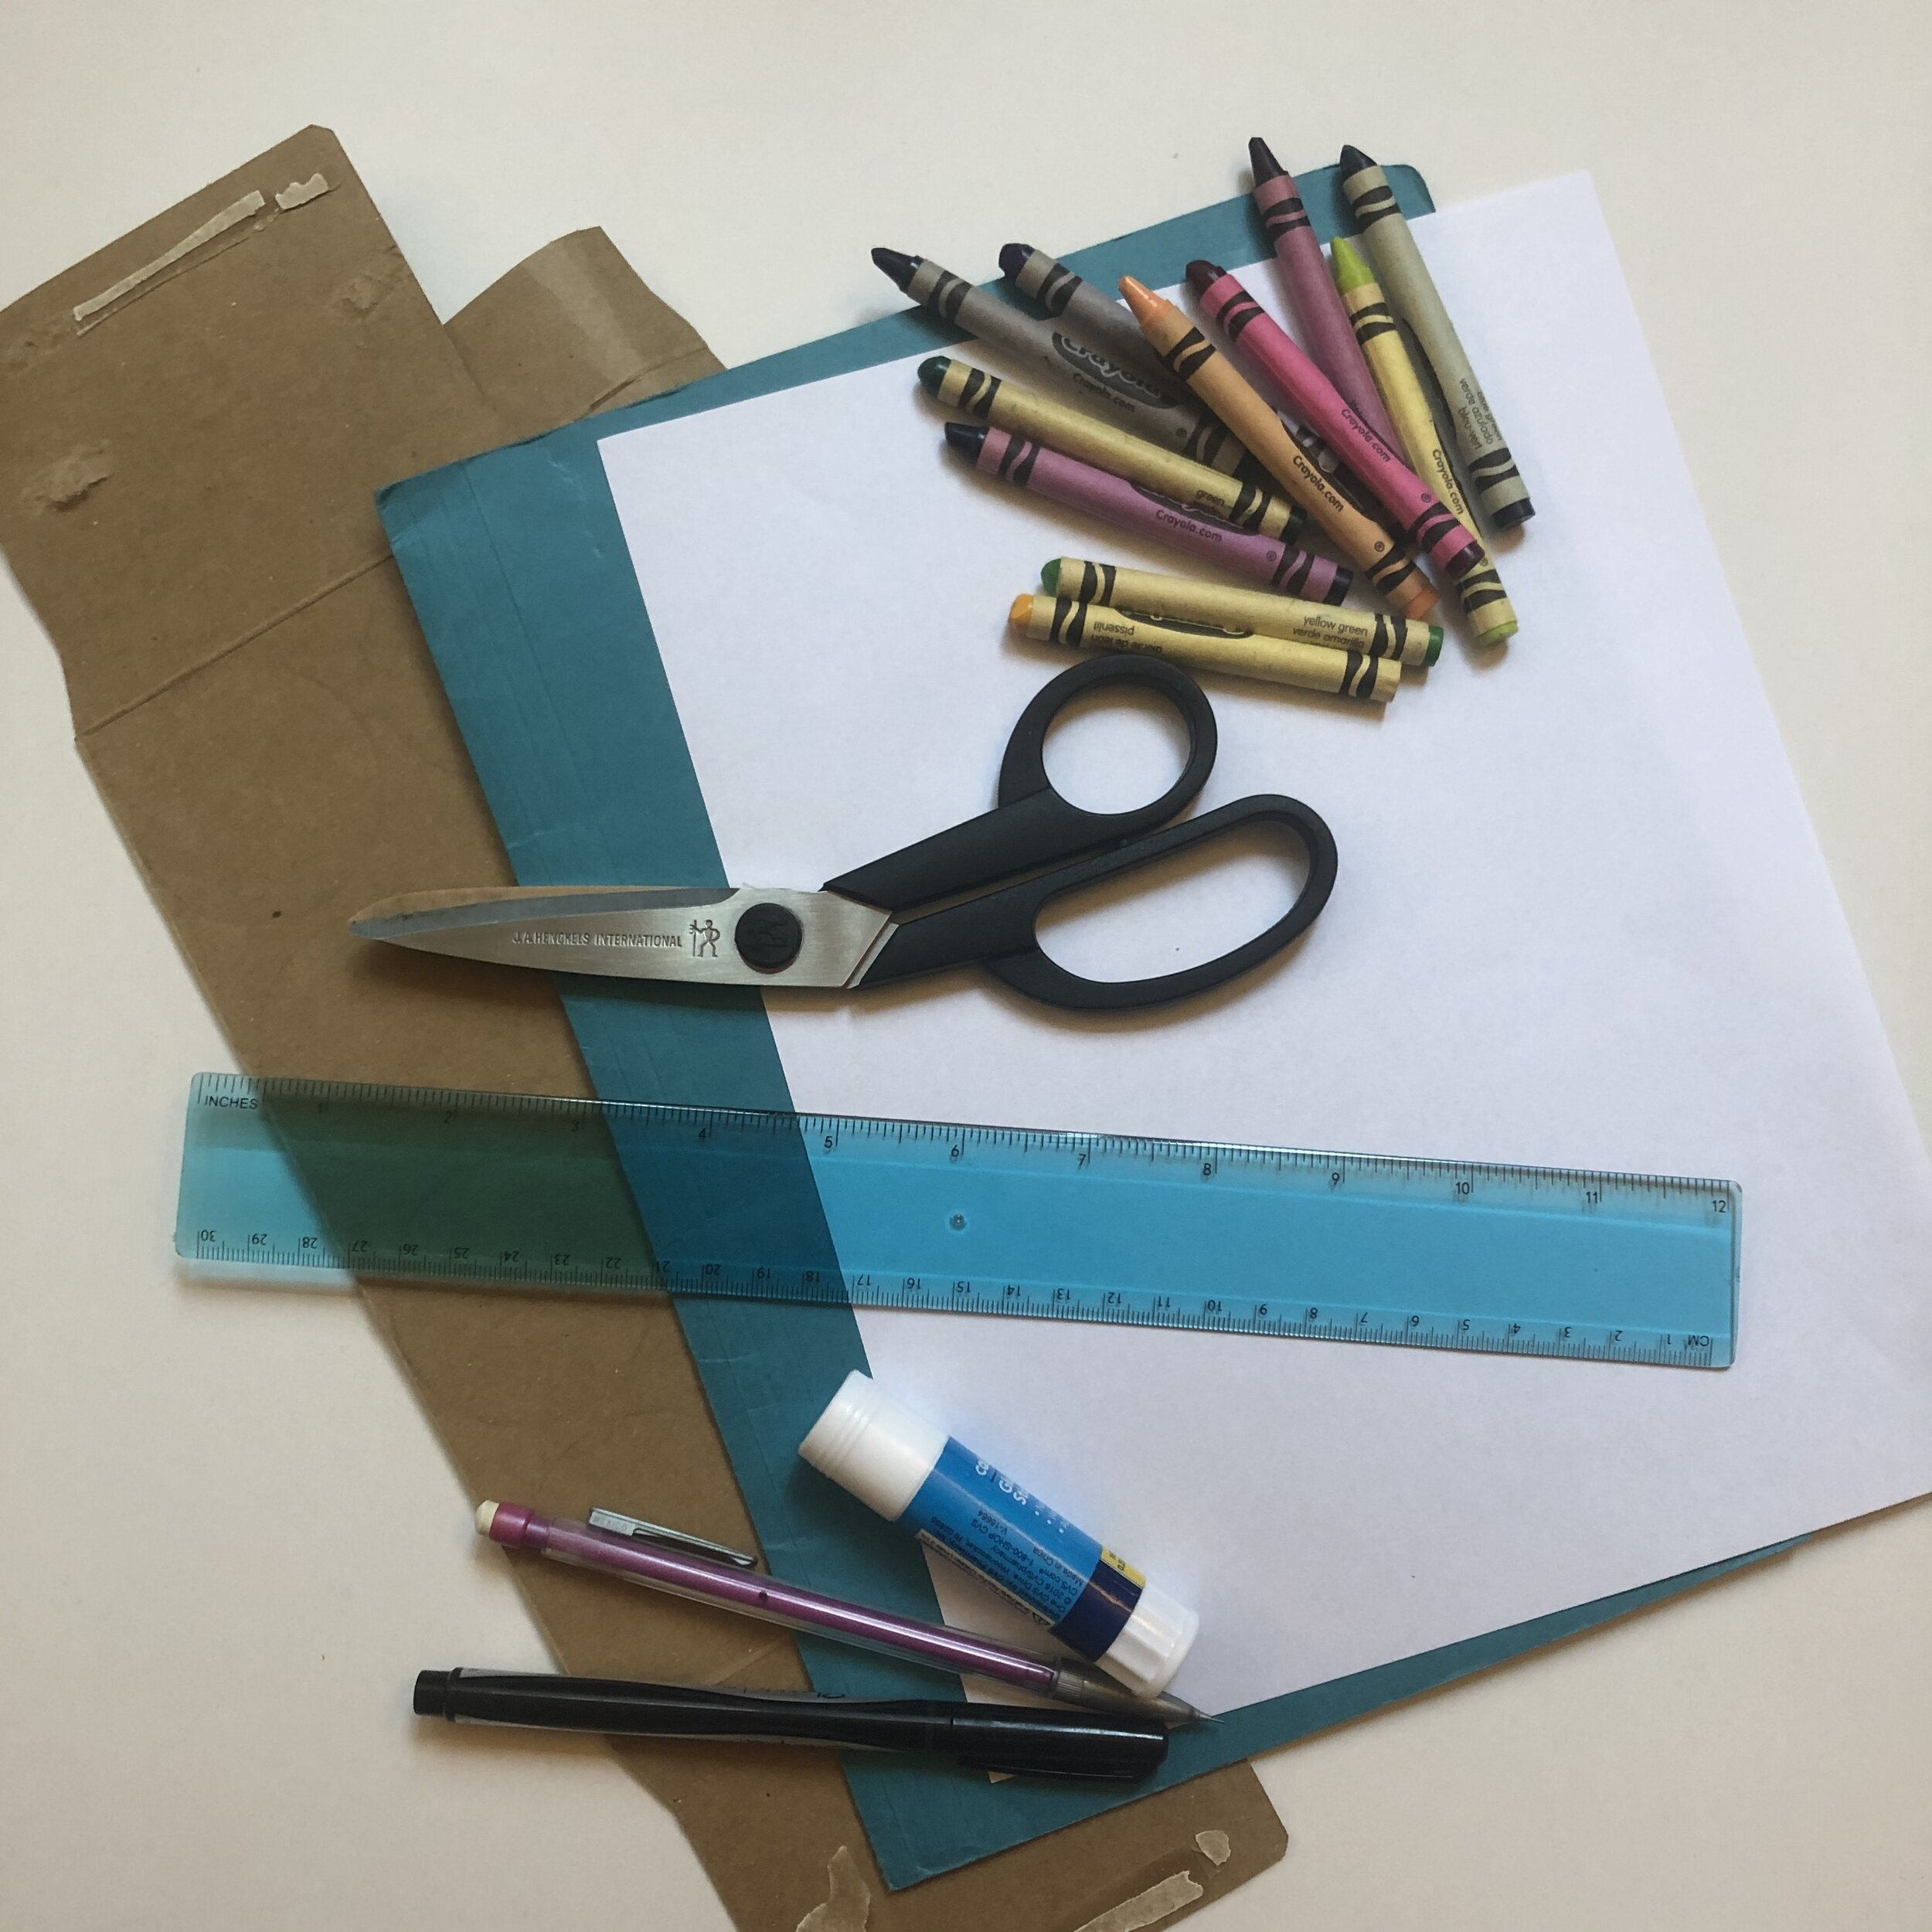 Paper scissors and crayons, supplies